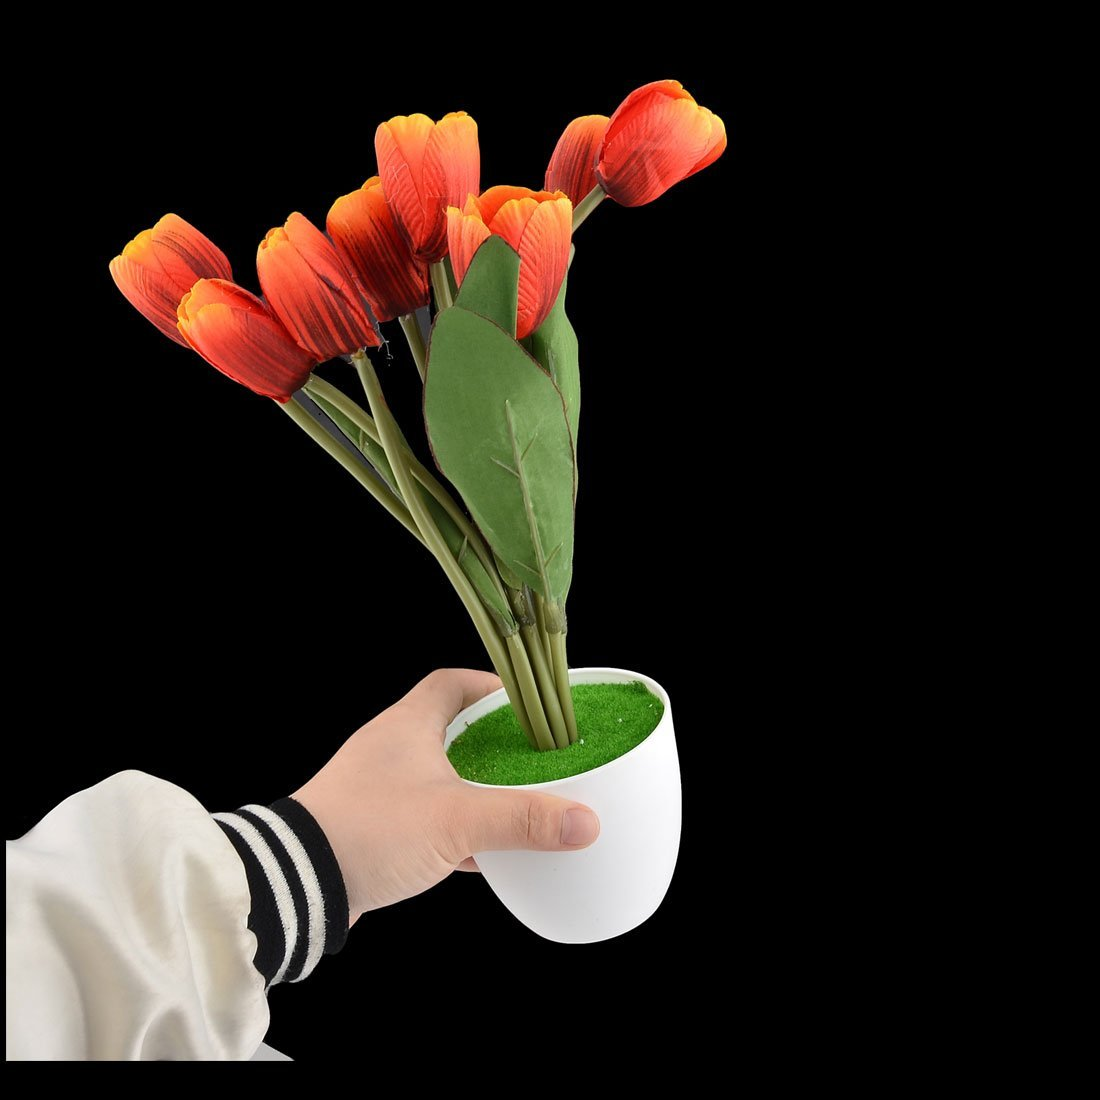 Amazon.com: eDealMax plástico de escritorio DIY de la decoración de Los tulipanes de la simulación Artificial Rojo Flor: Home & Kitchen